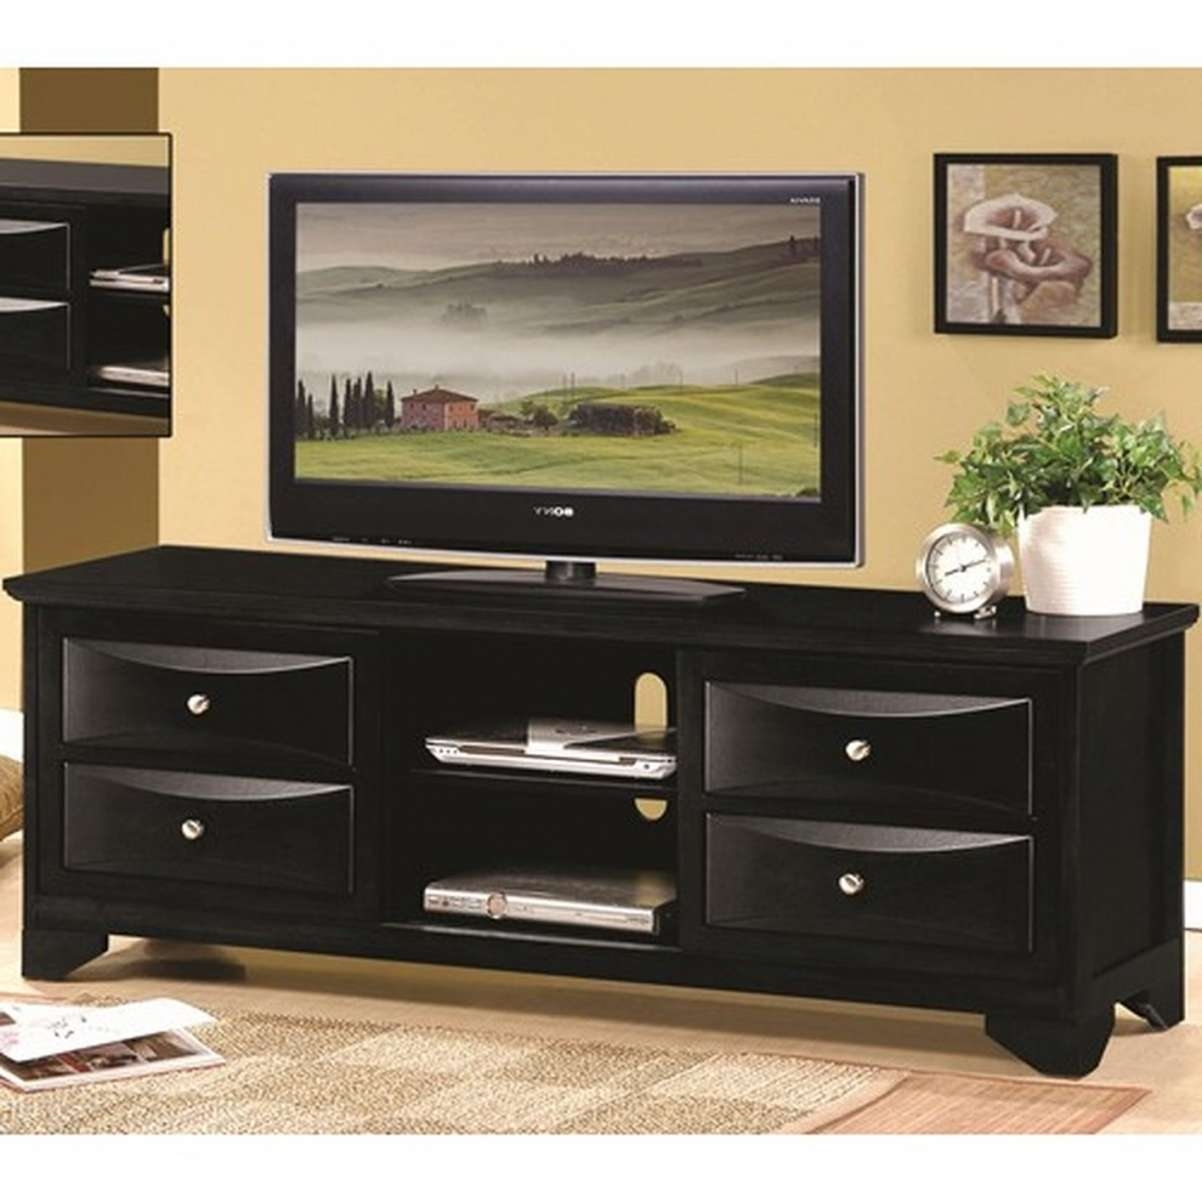 Luxury Tv Stands Big Lots Fresh – Best Furniture Gallery Throughout Luxury Tv Stands (View 12 of 15)